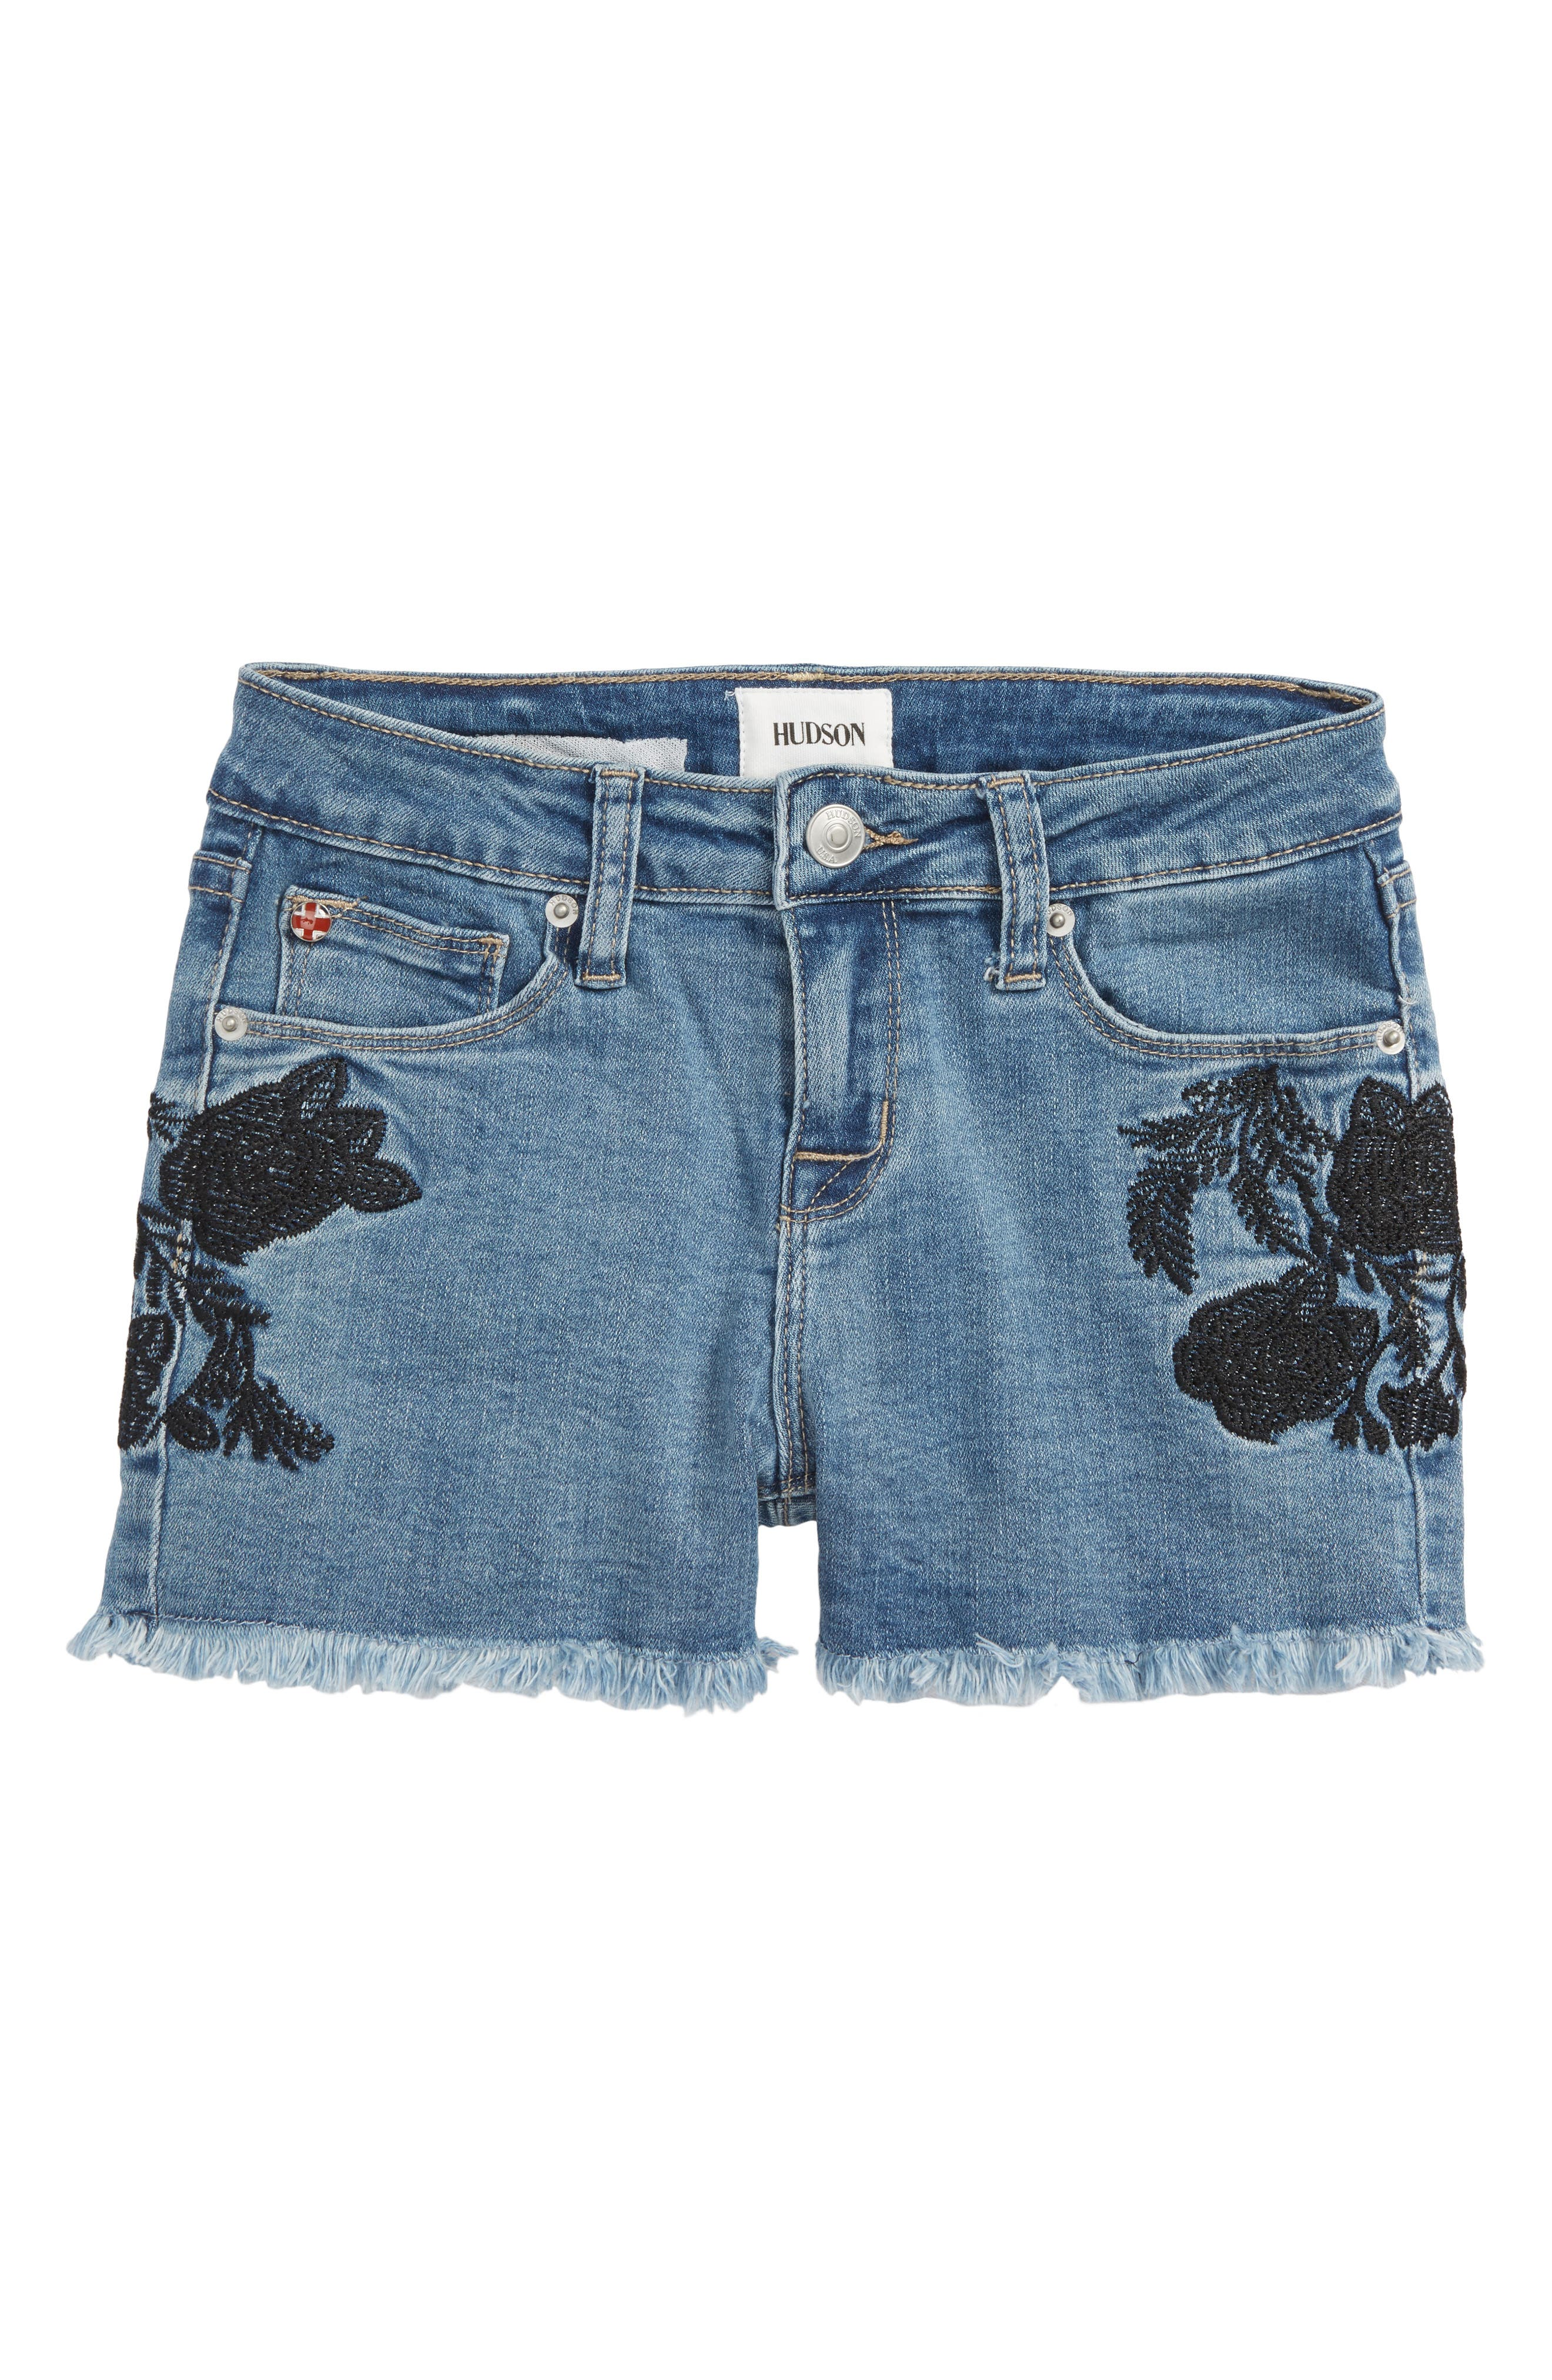 Floral Embroidery Frayed Hem Shorts,                         Main,                         color,